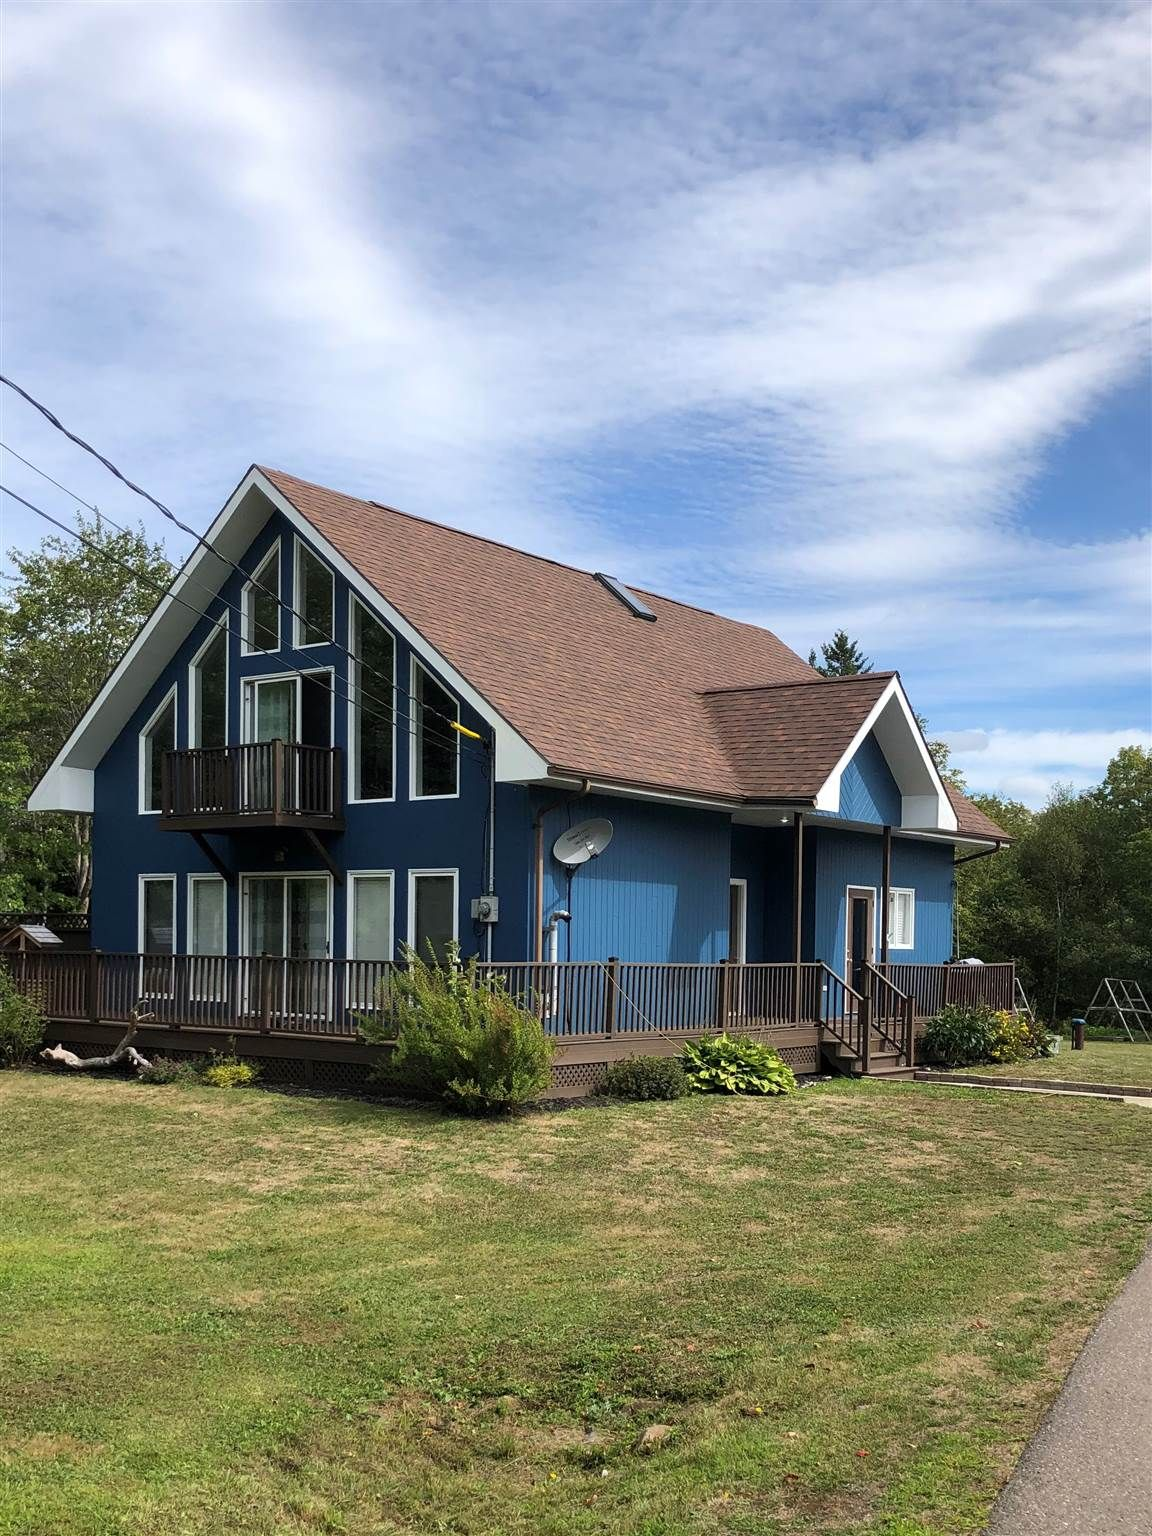 Main Photo: 792 LIGHTHOUSE Road in Bay View: 401-Digby County Residential for sale (Annapolis Valley)  : MLS®# 202102540